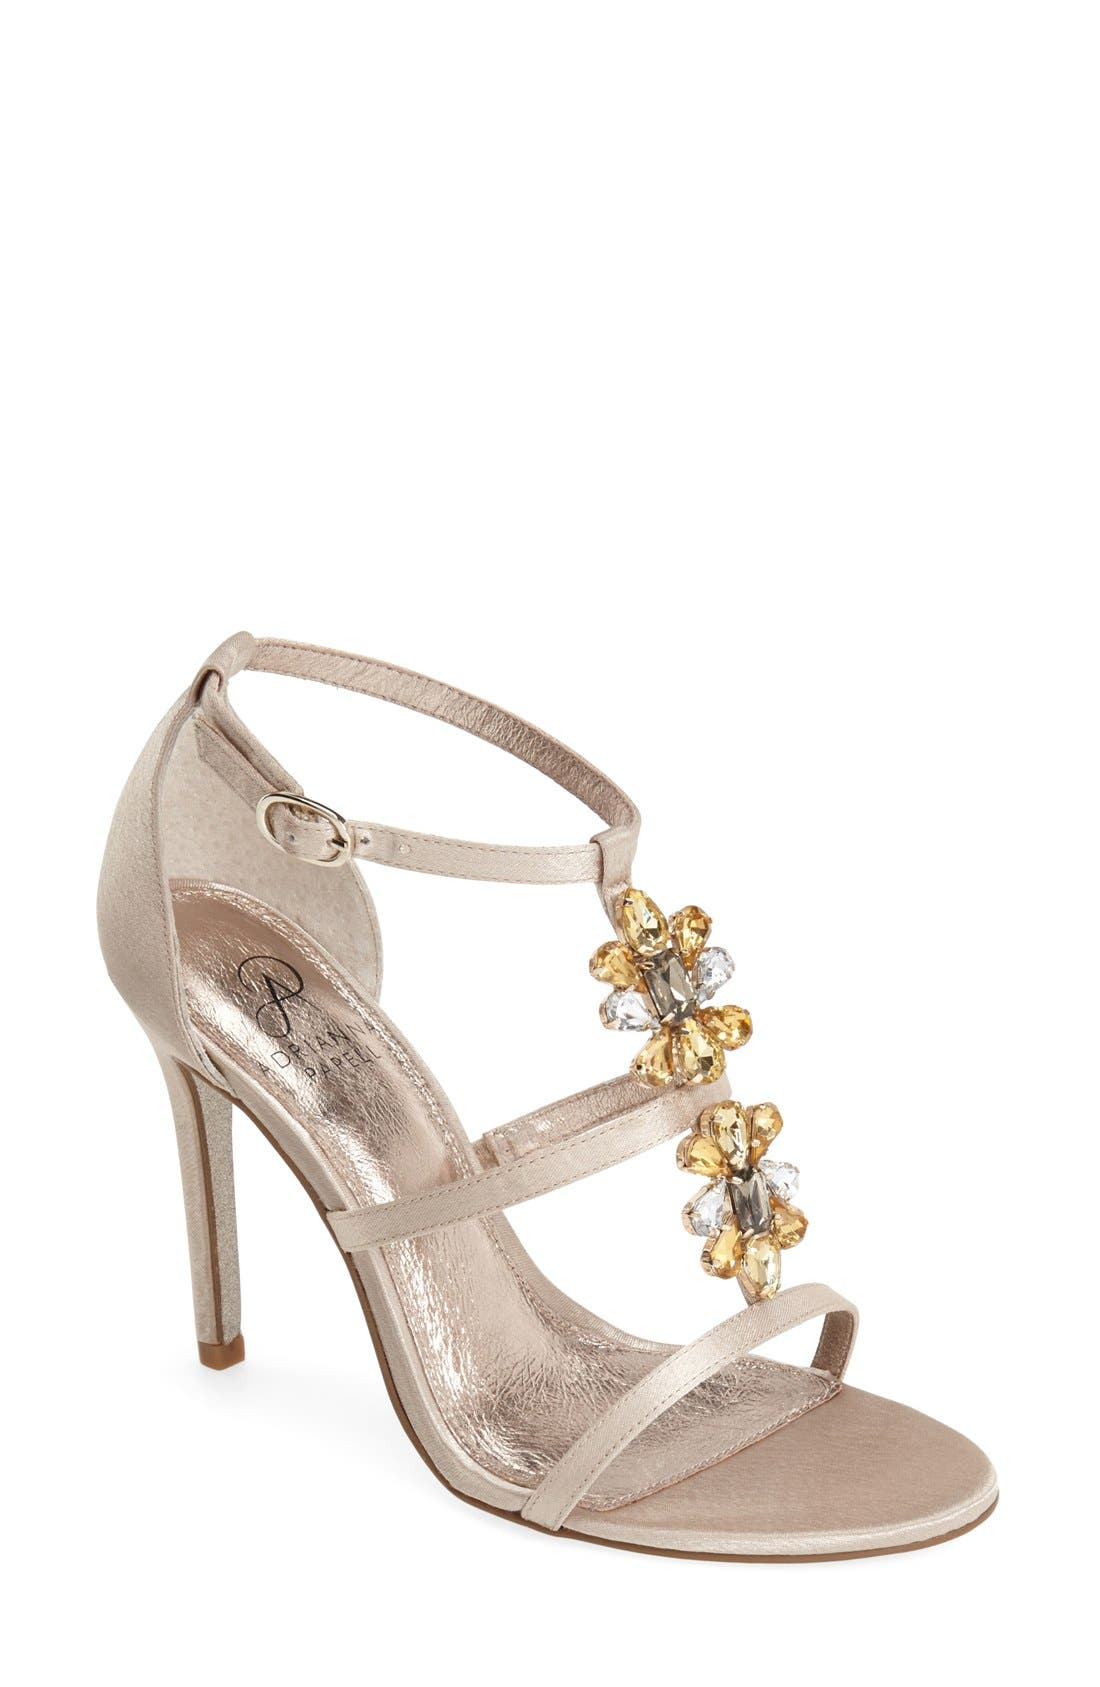 Alternate Image 1 Selected - Adrianna Papell 'Daphne' Jeweled Strappy Sandal (Women)